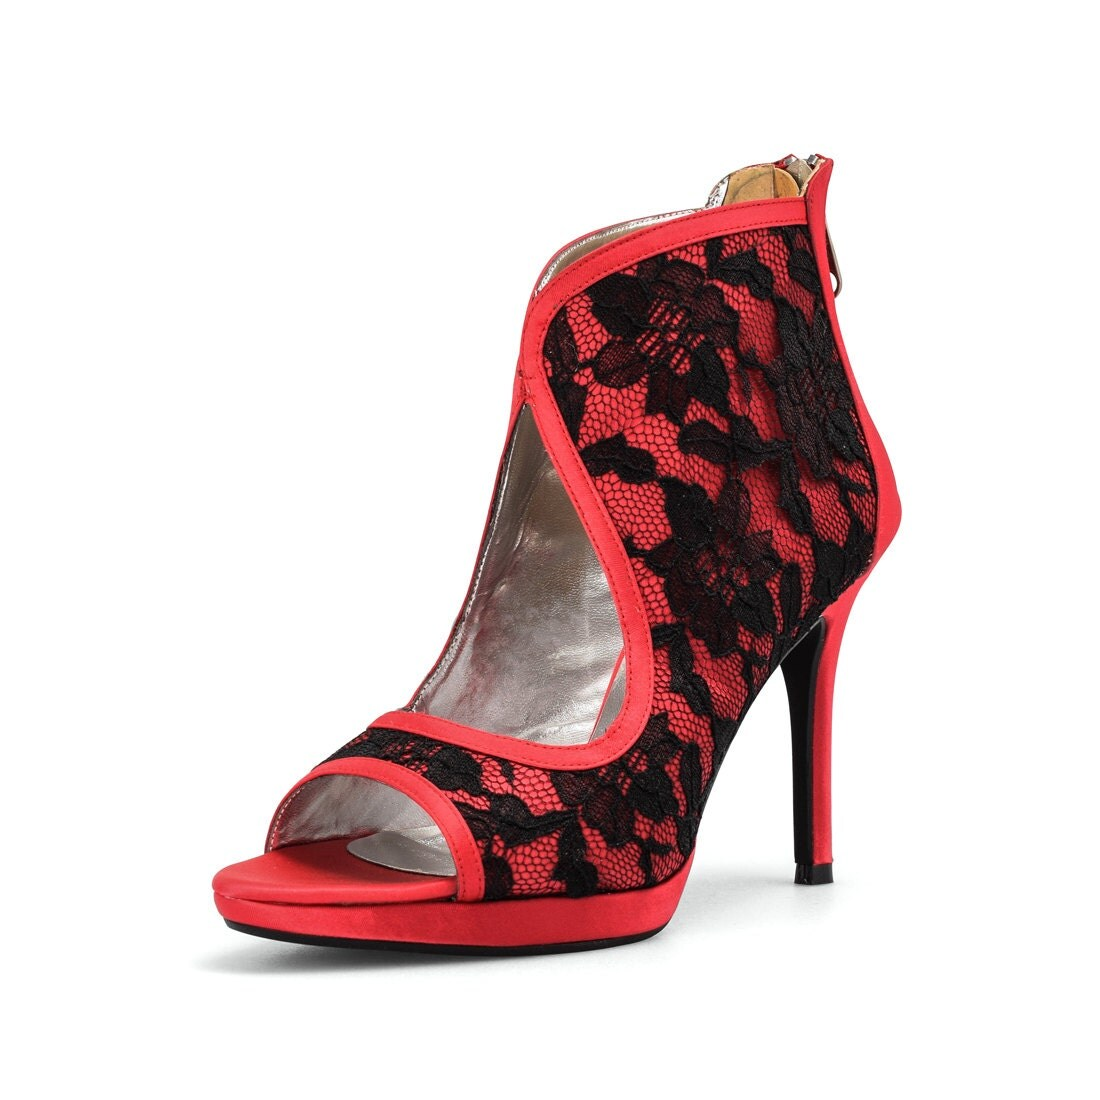 Custom Made Shoes Red Bootie Wedding ShoesRed Bridal